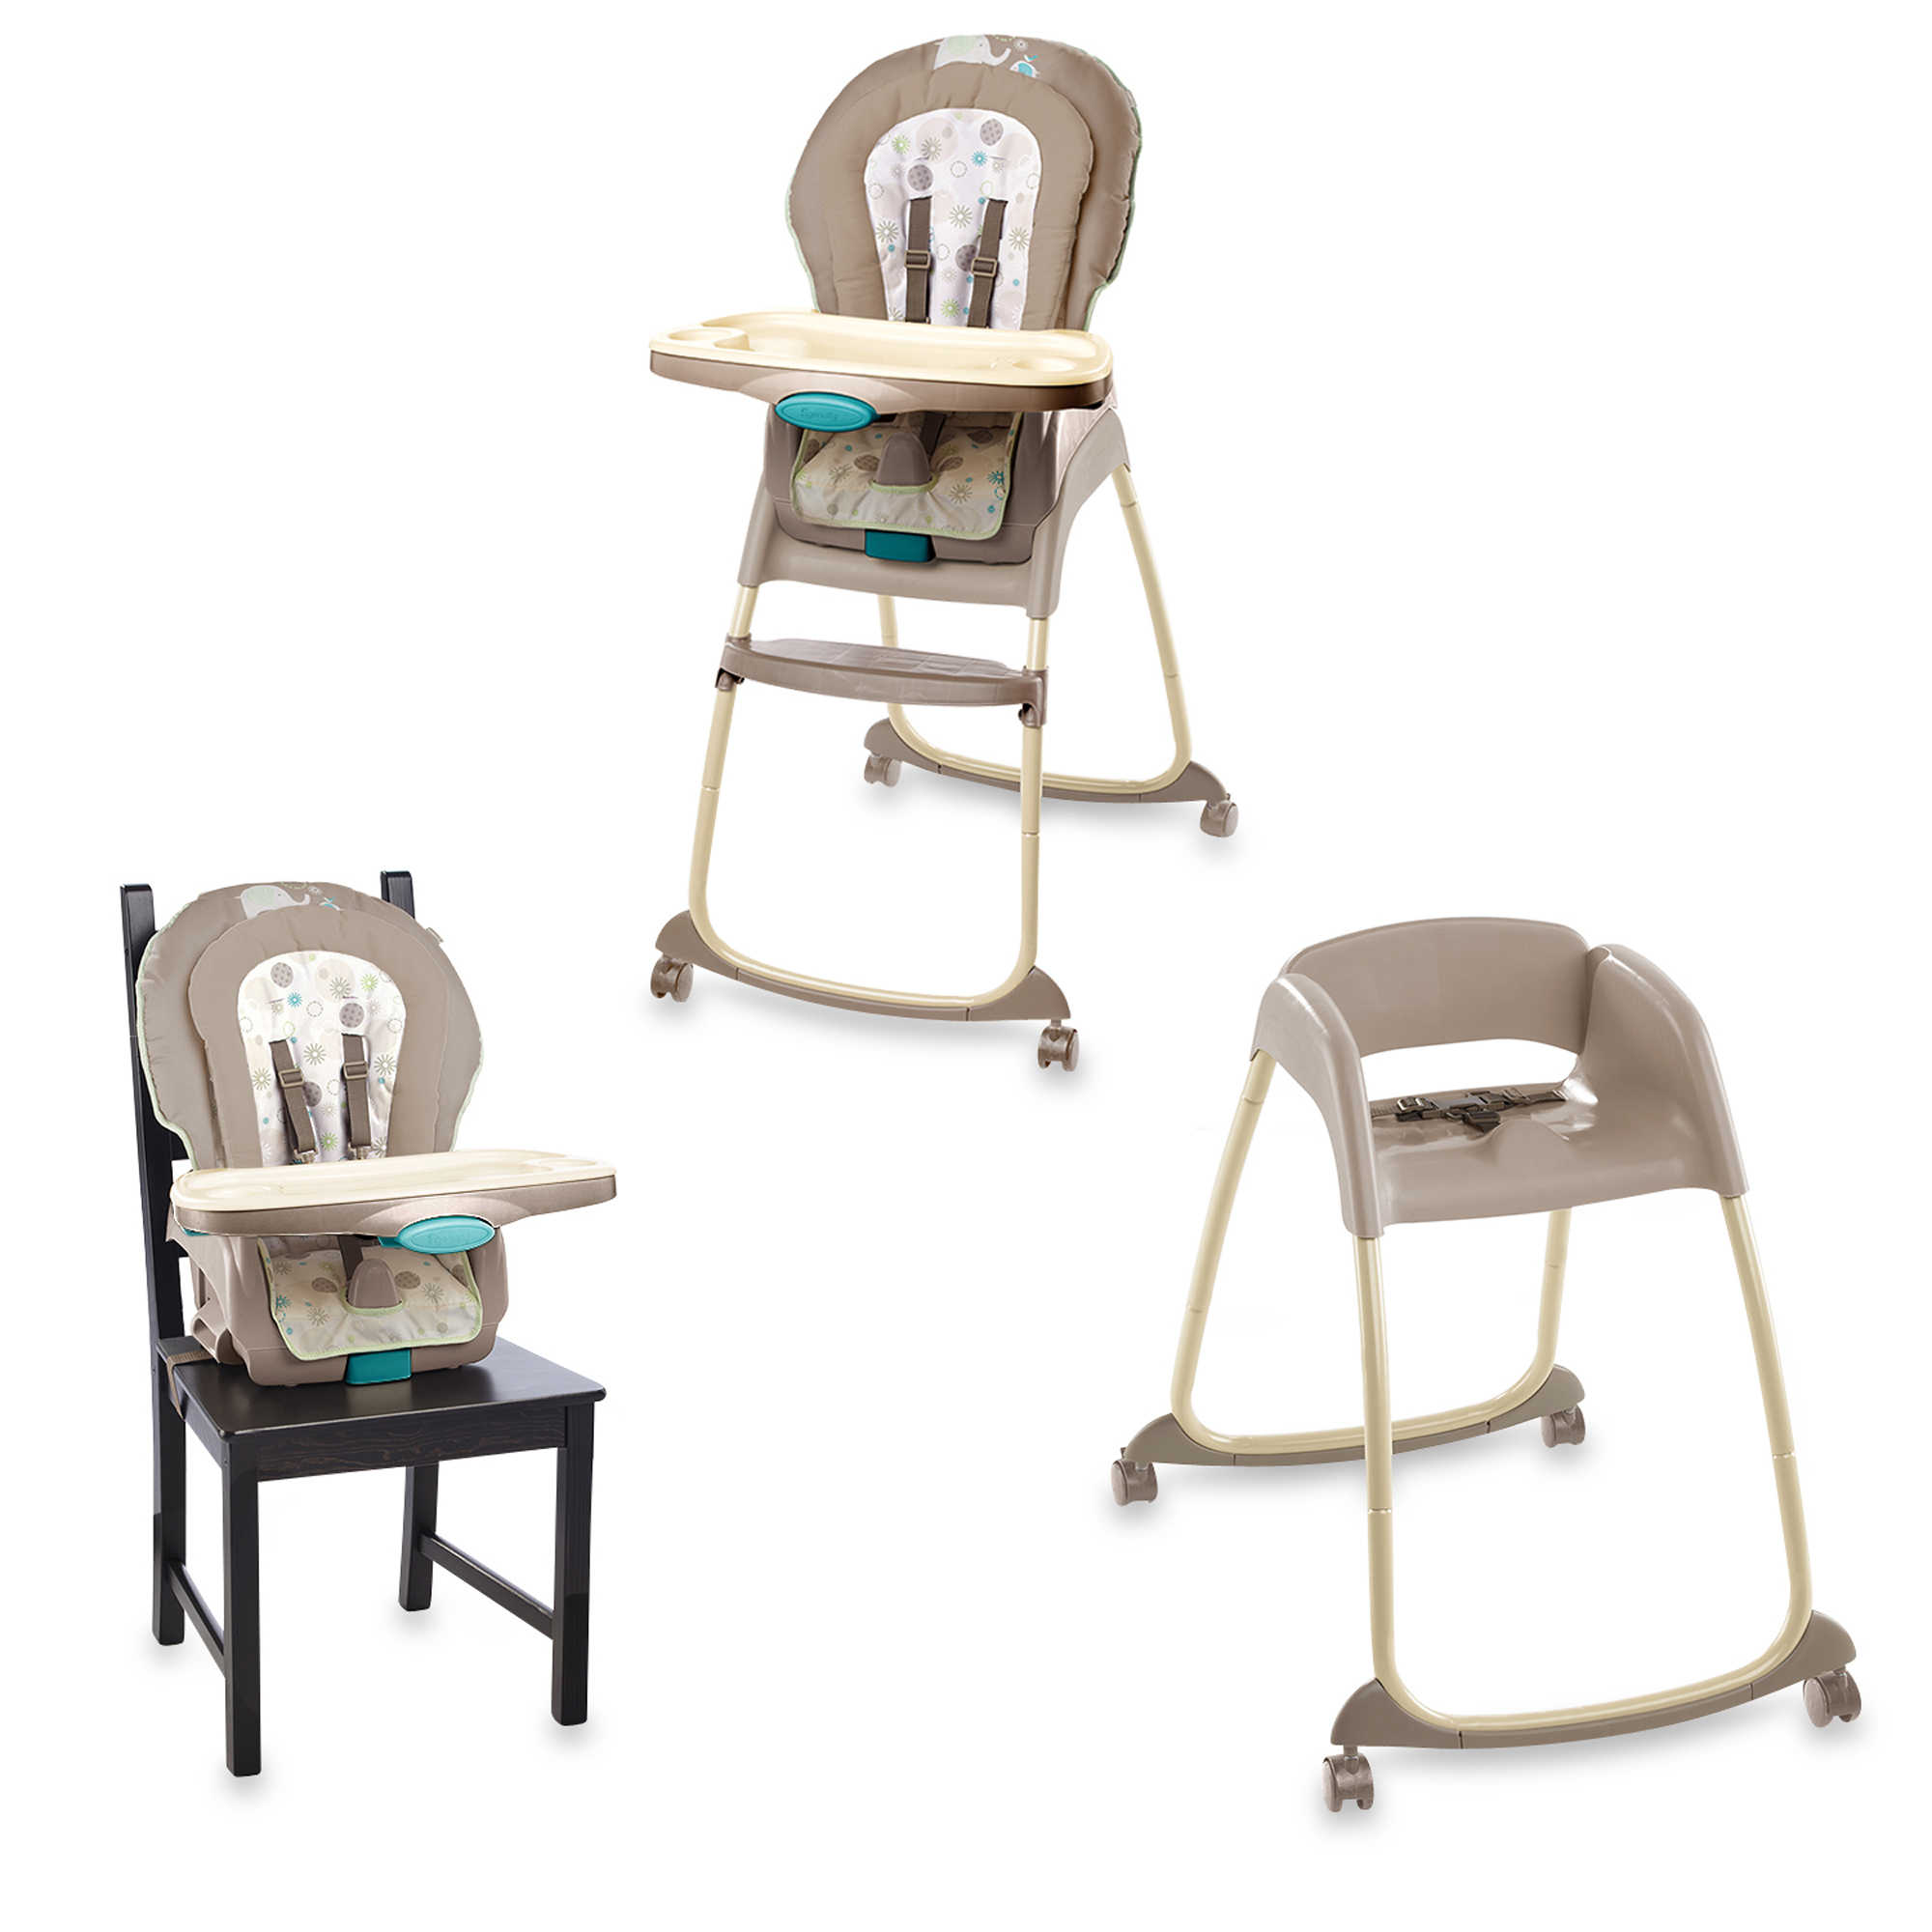 approved s high to and which chair use for grow the list they placements tray this child has your deluxe as ingenuity fisher harrison allows in